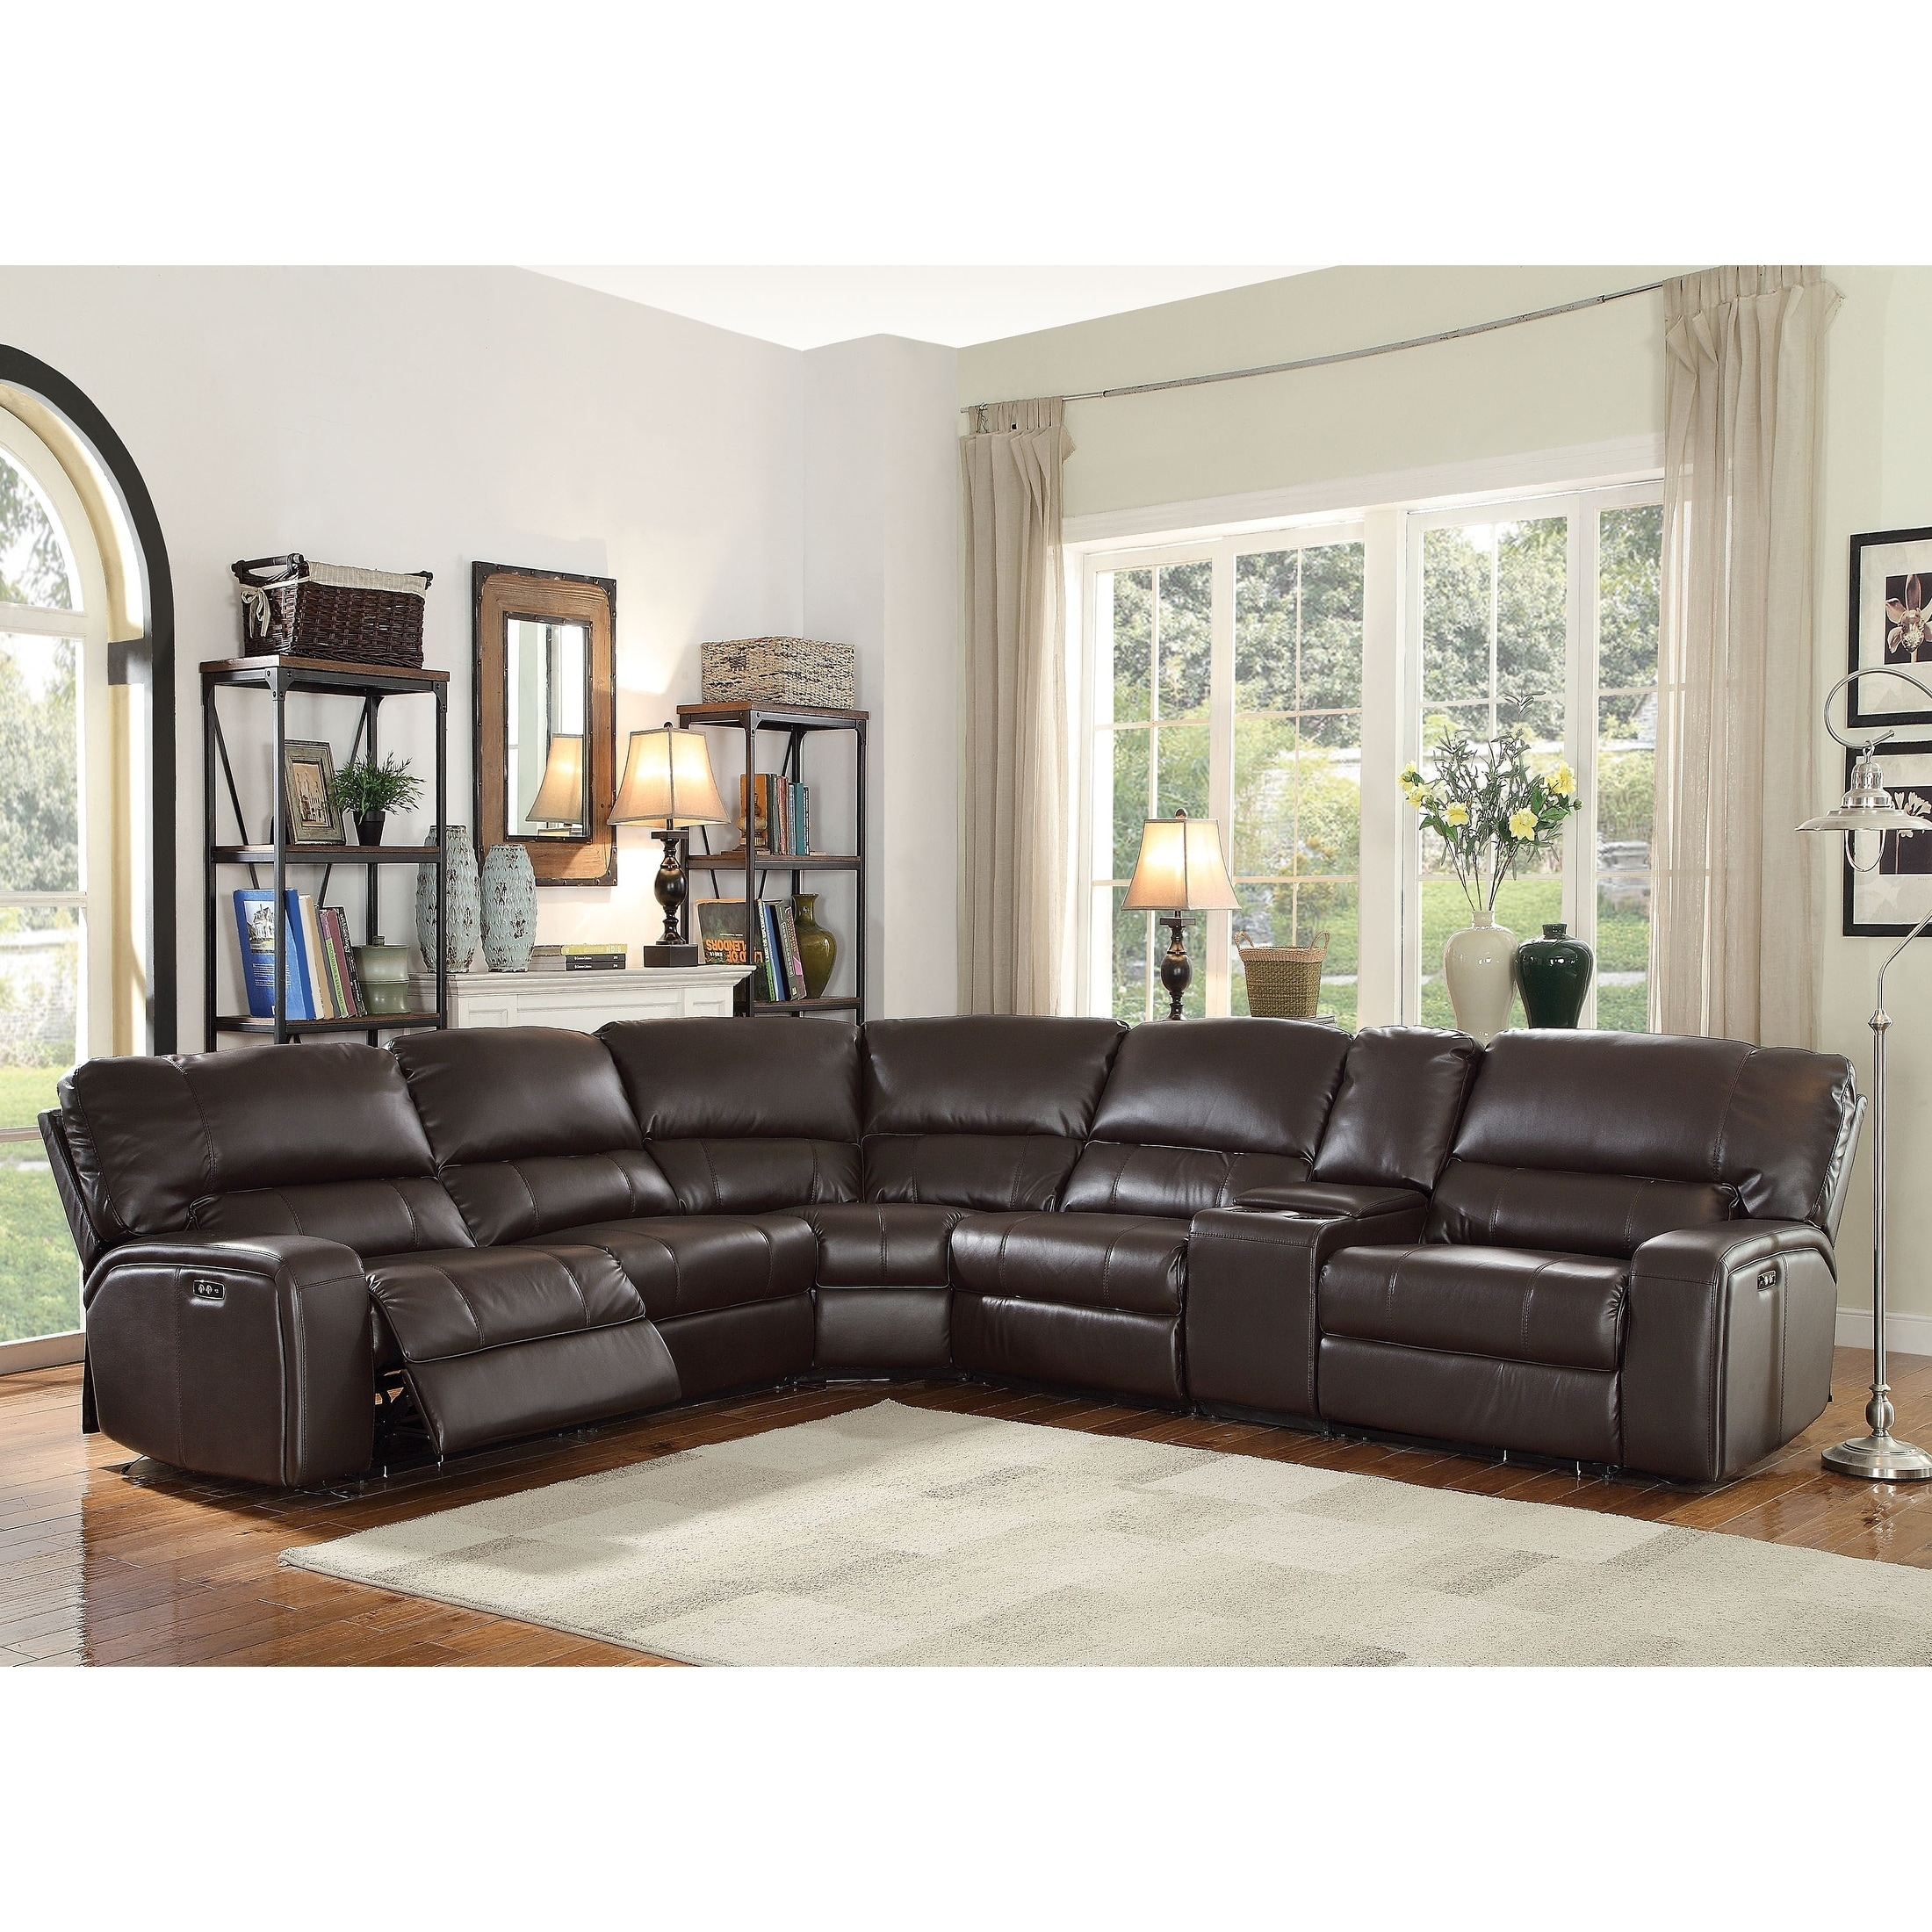 acme saul espresso leather aire sectional sofa with power motion